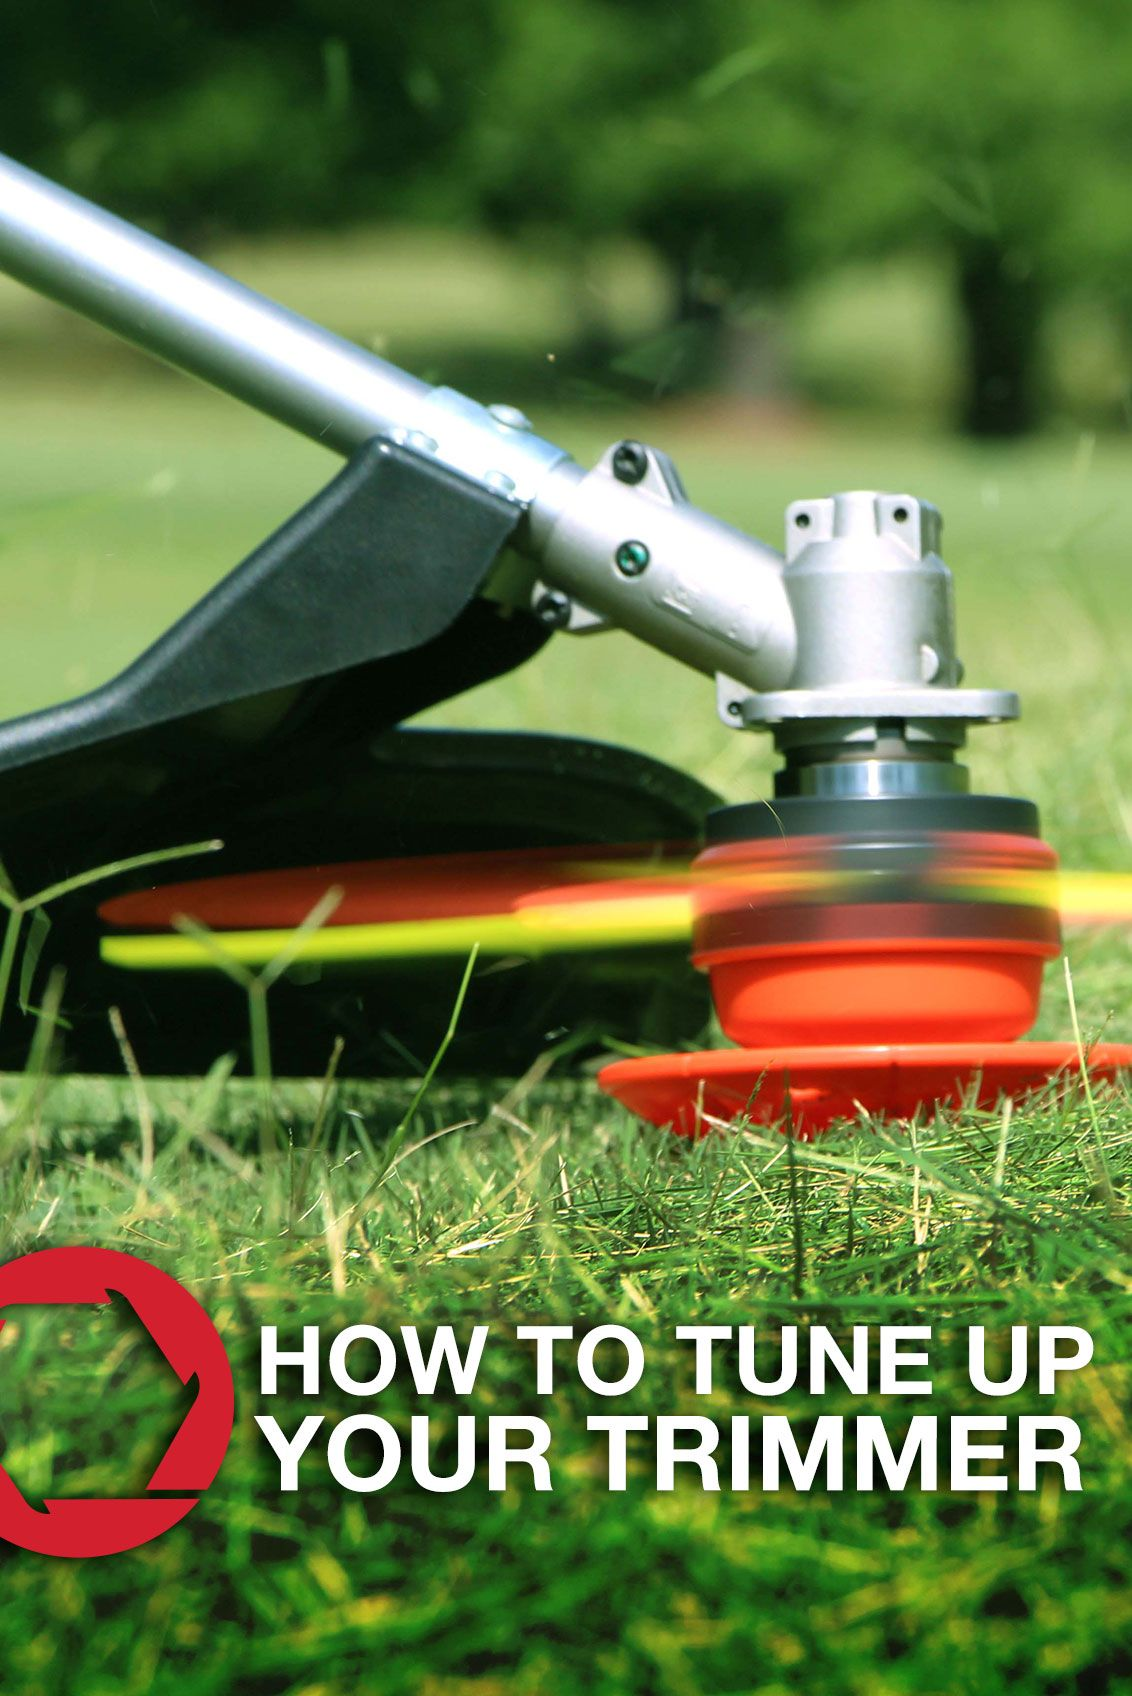 Is your string trimmer ready for spring? With a few simple